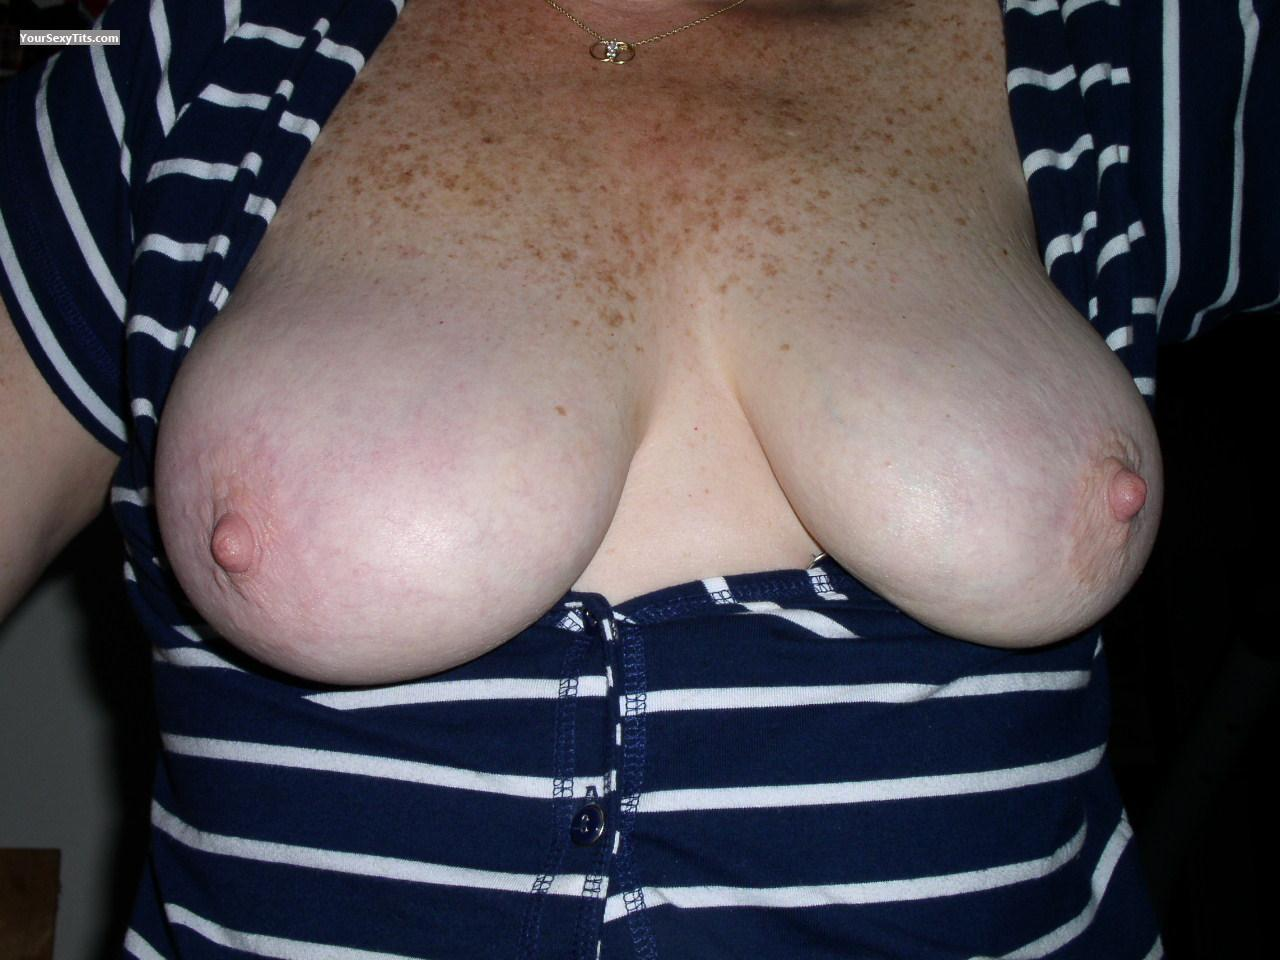 Tit Flash: Big Tits - 2010 from United States